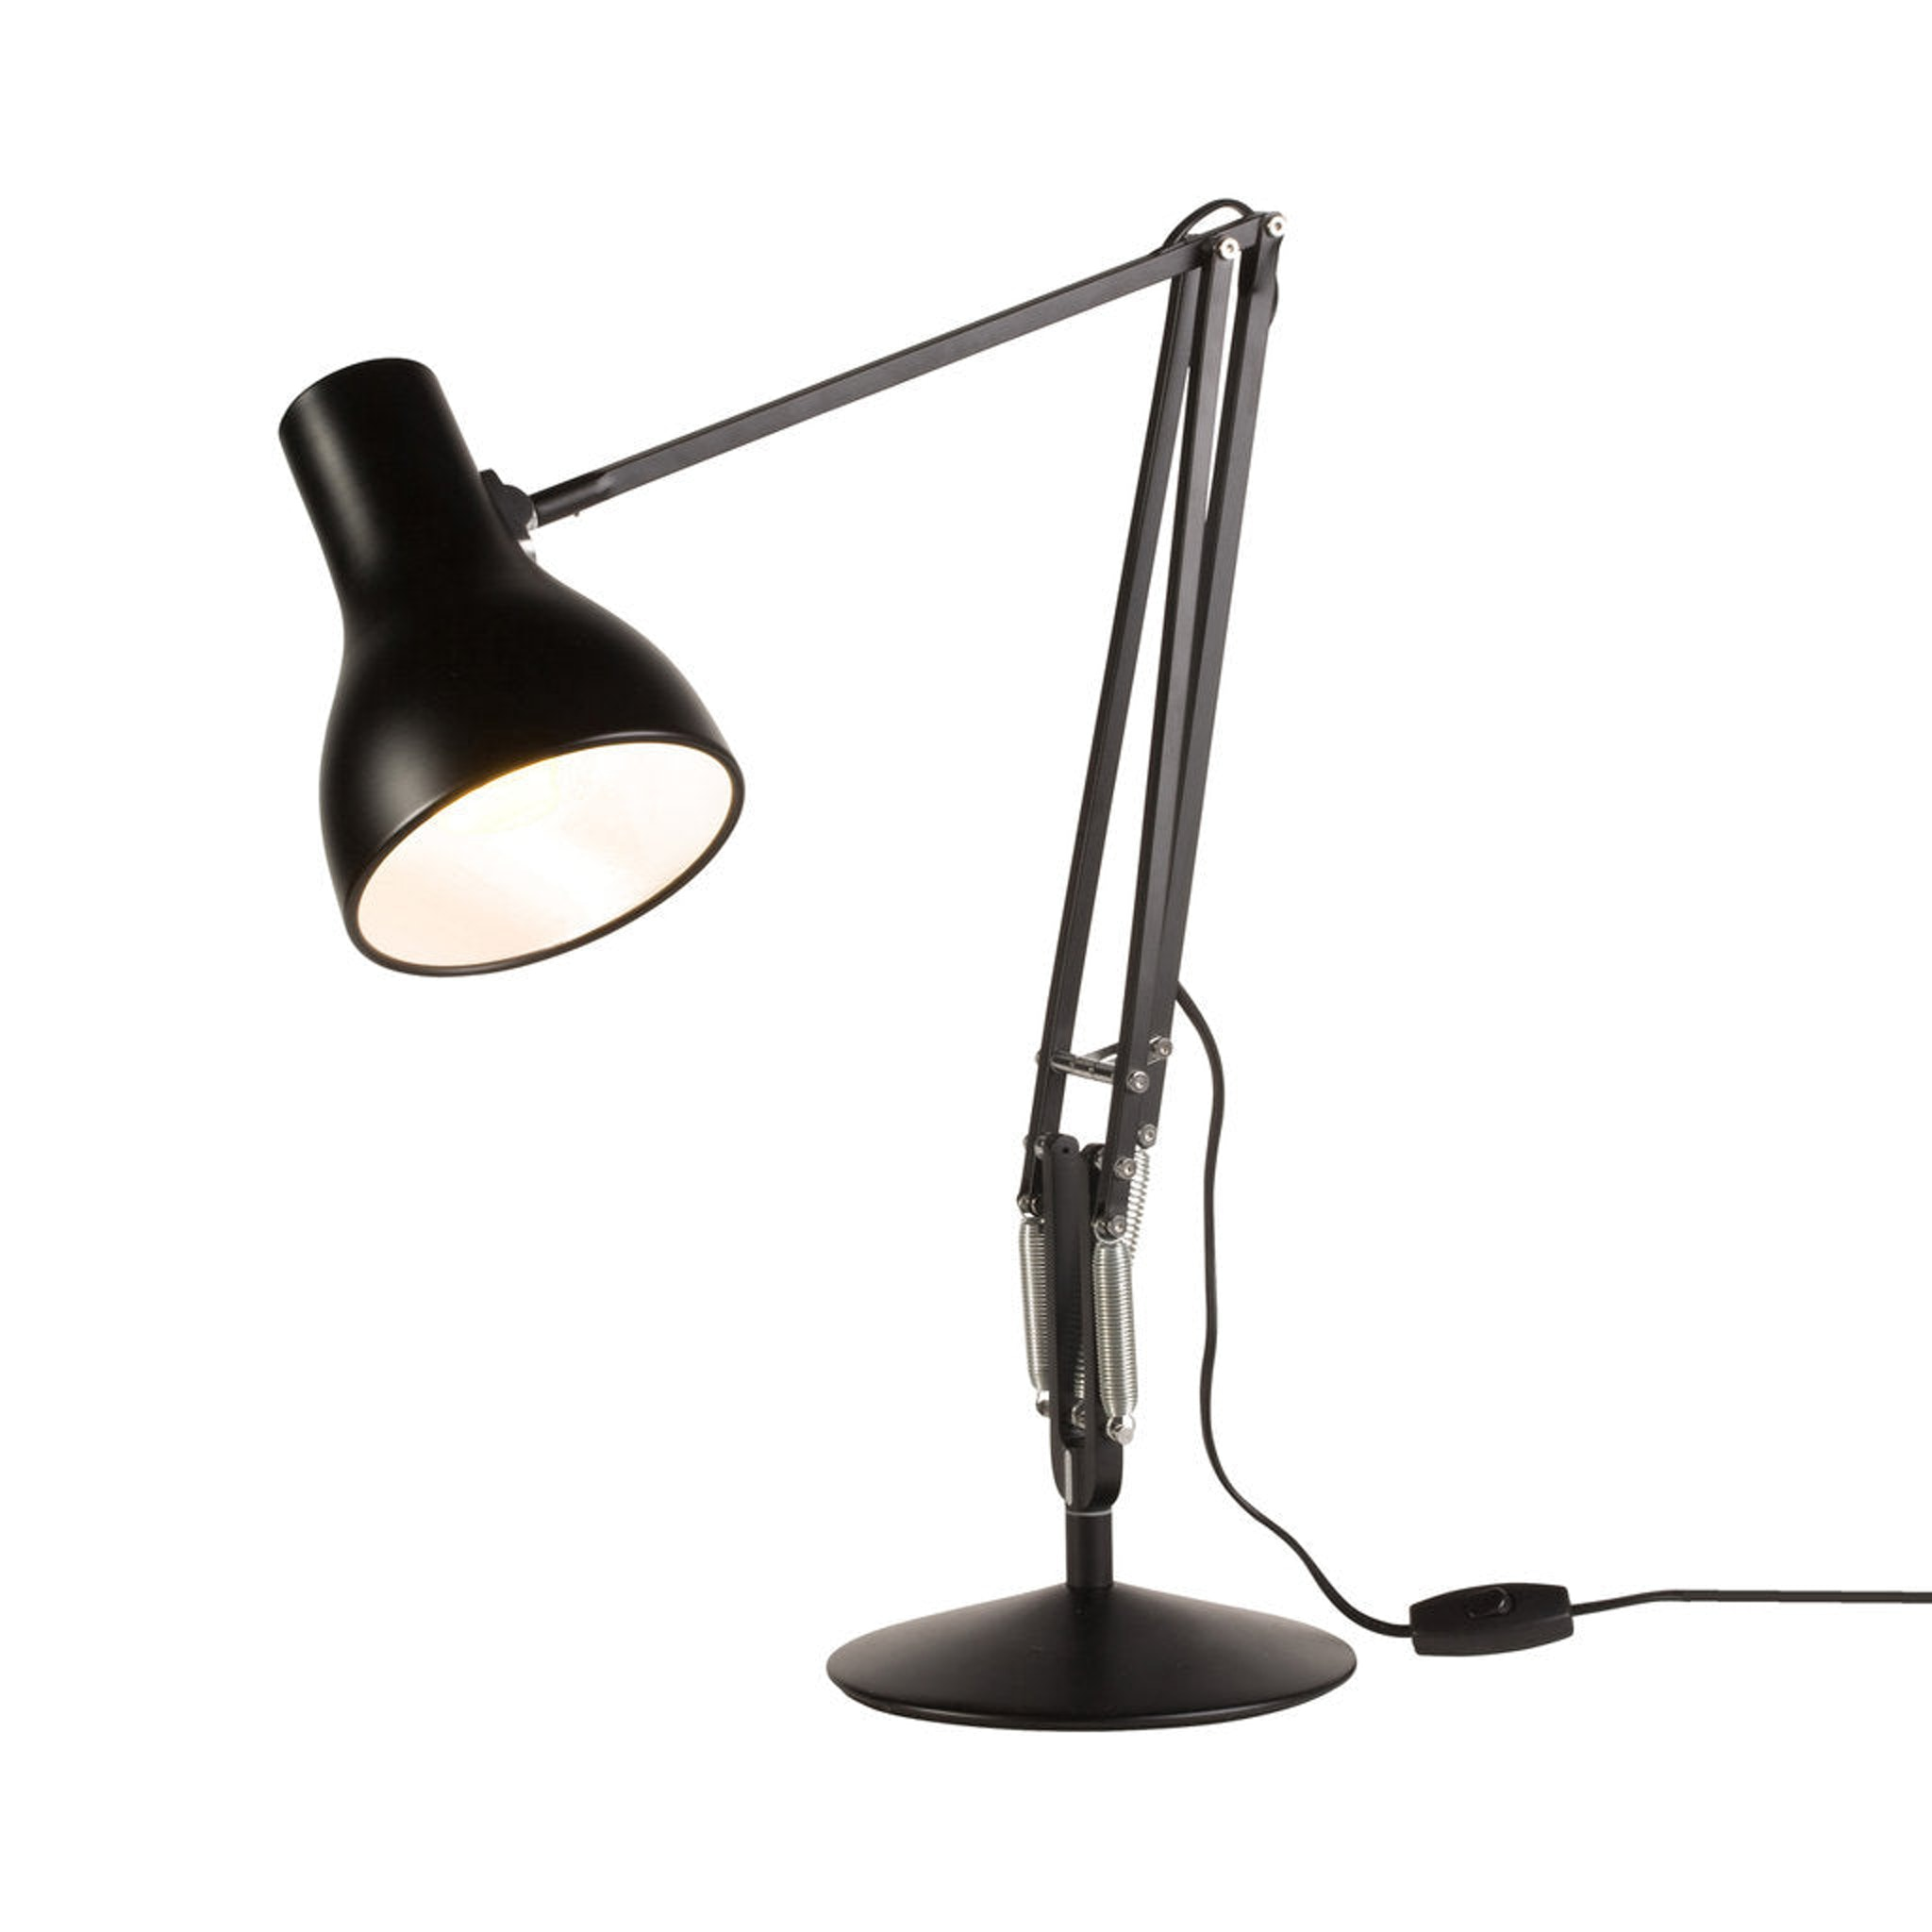 Type 75 Desk Lamp by Kenneth Grange